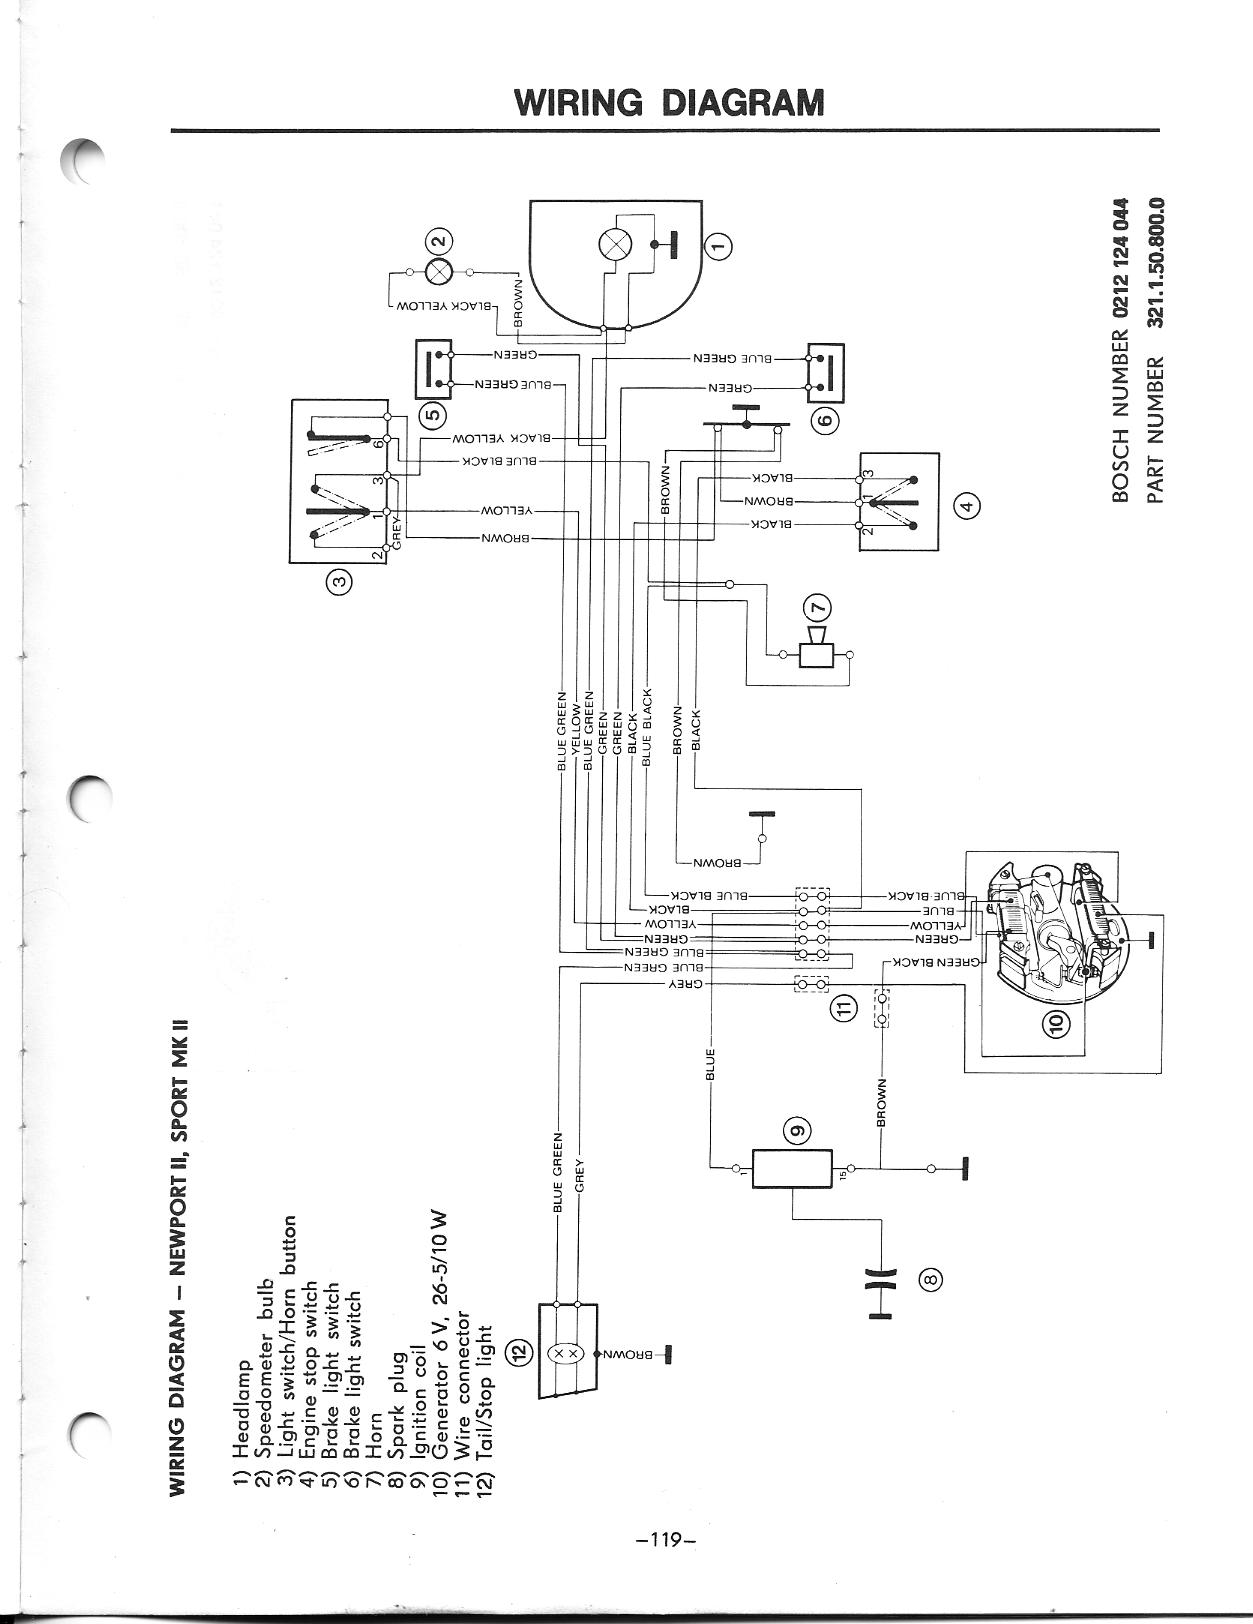 77 Puch E50 Maxi Stalls And Stutters Moped Army Wiring 6 Volt Ignition Coil Circuit Diagram Puchsm119